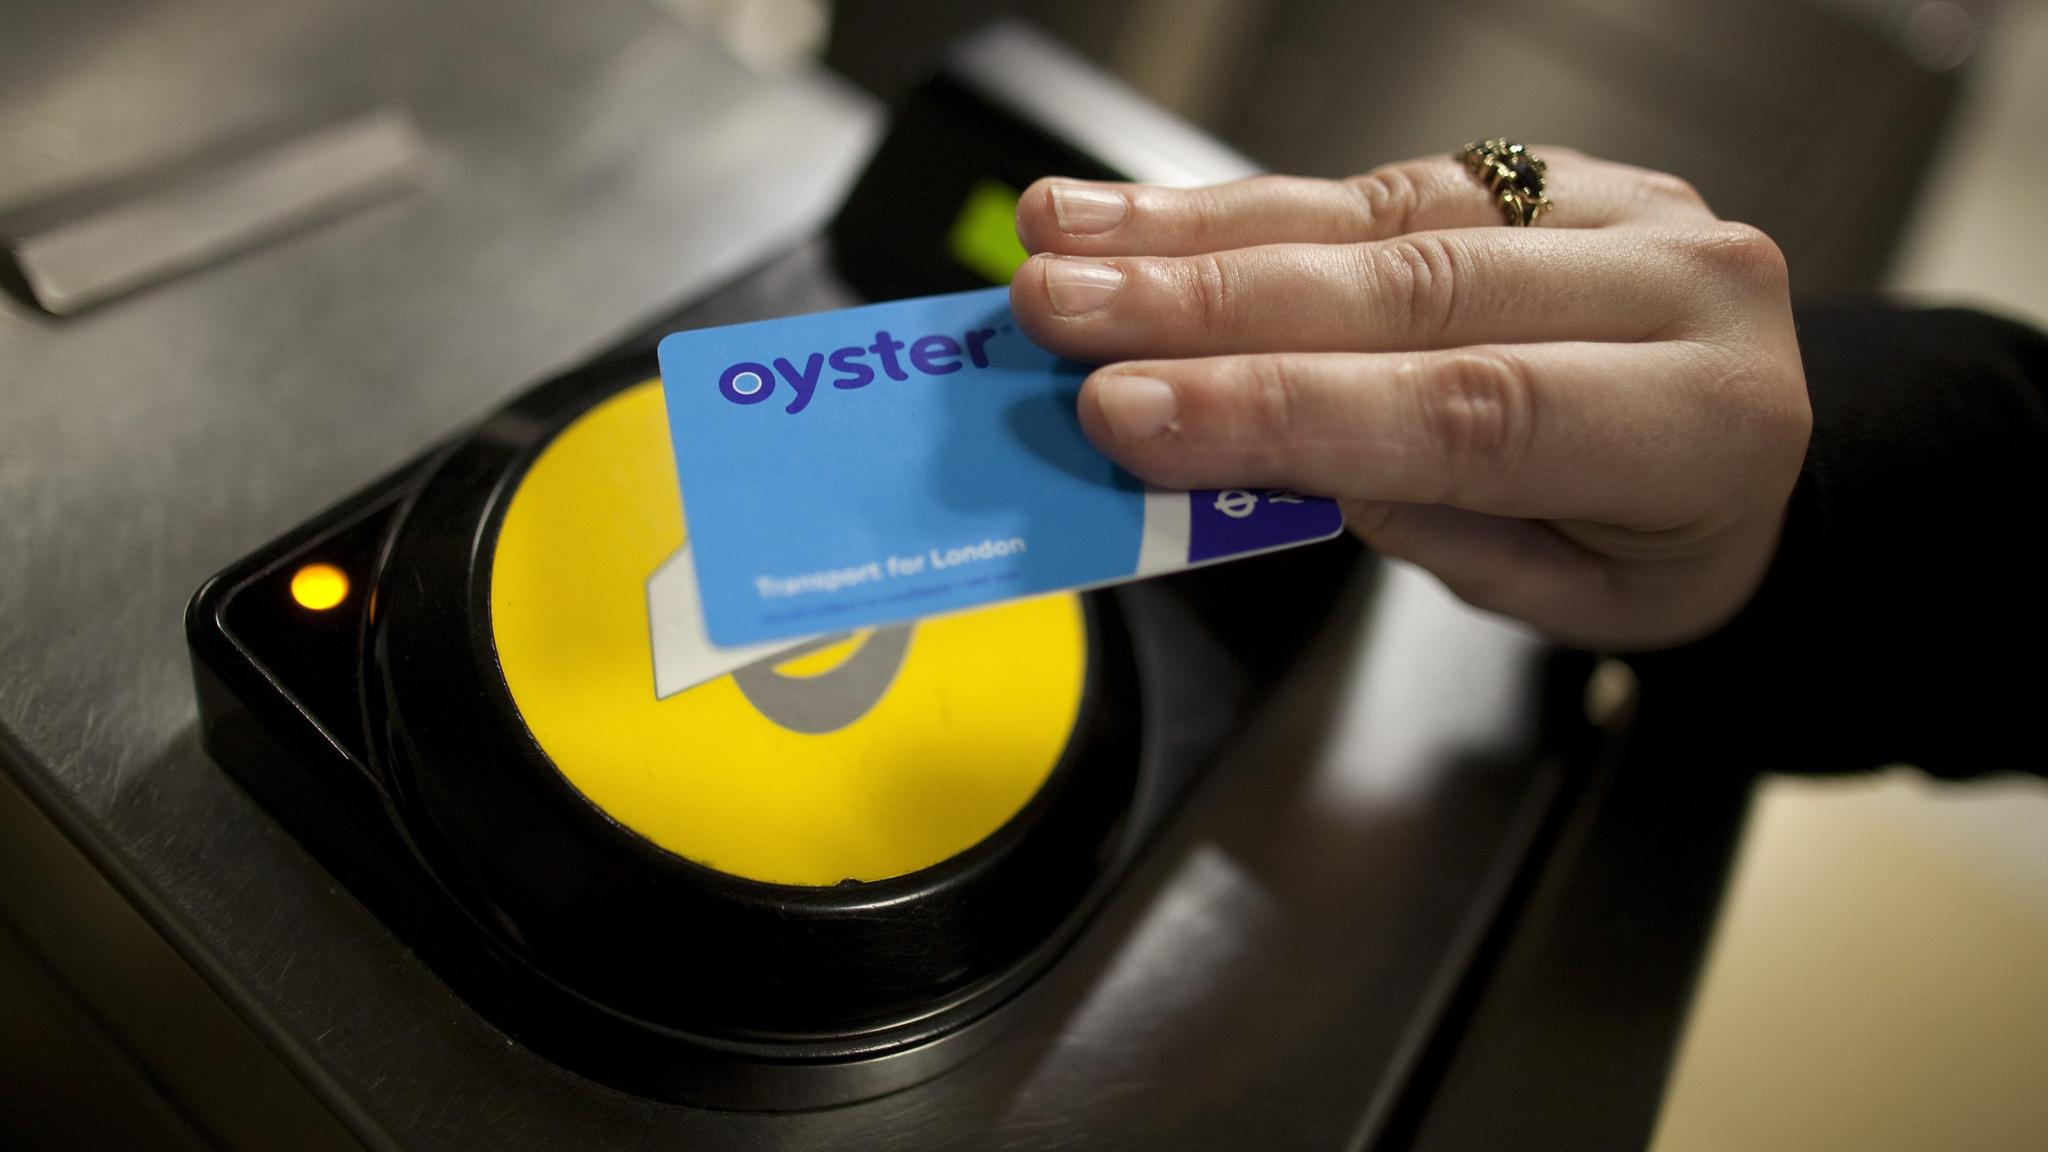 TfL: The billionth journey using contactless payment on London's transport  network has been made